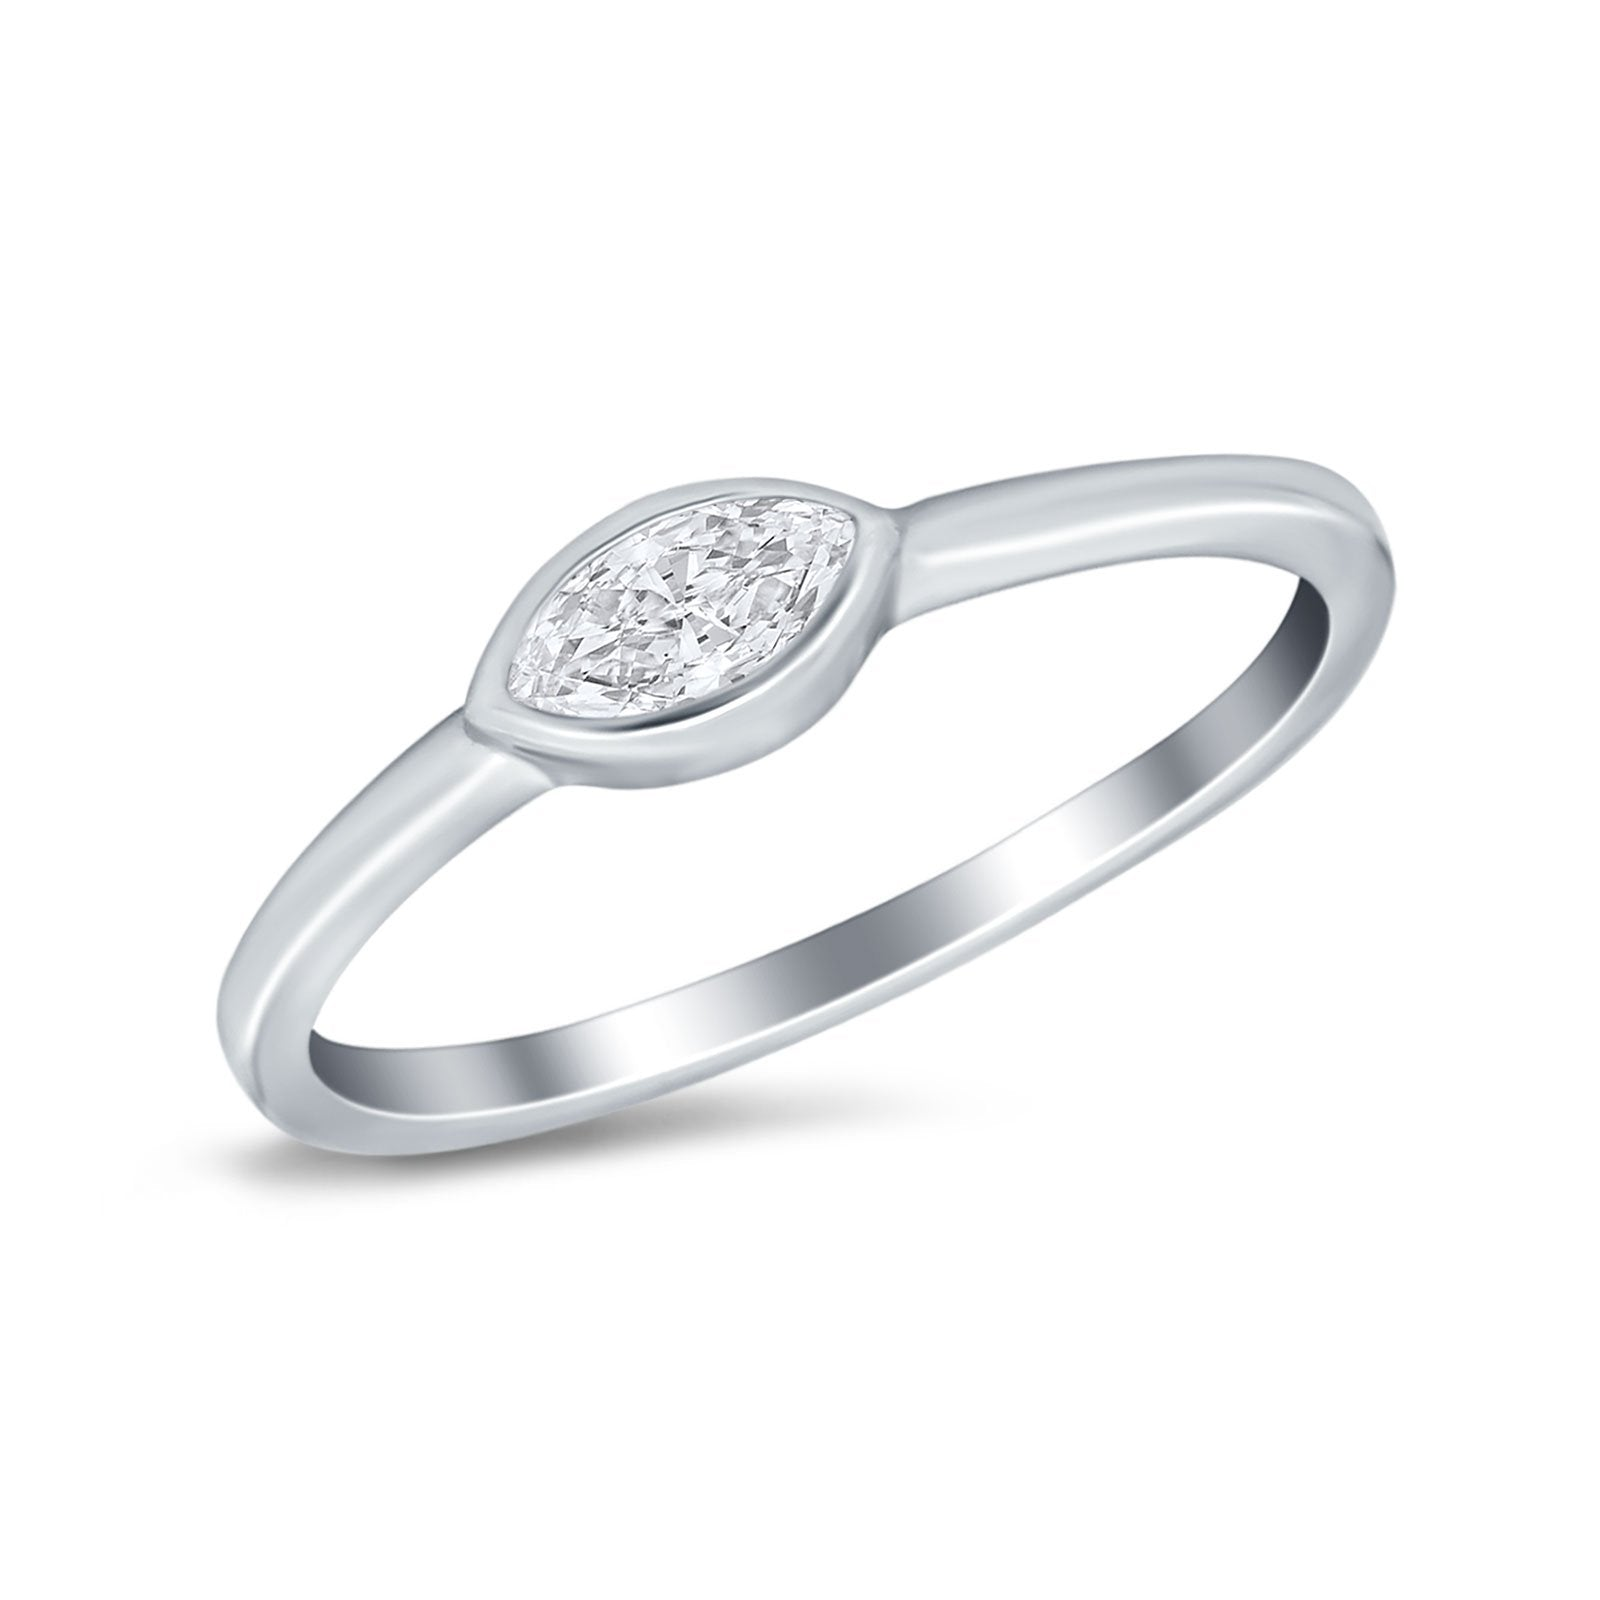 Petite Dainty Wedding Ring Simulated Marquise Cubic Zirconia 925 Sterling Silver